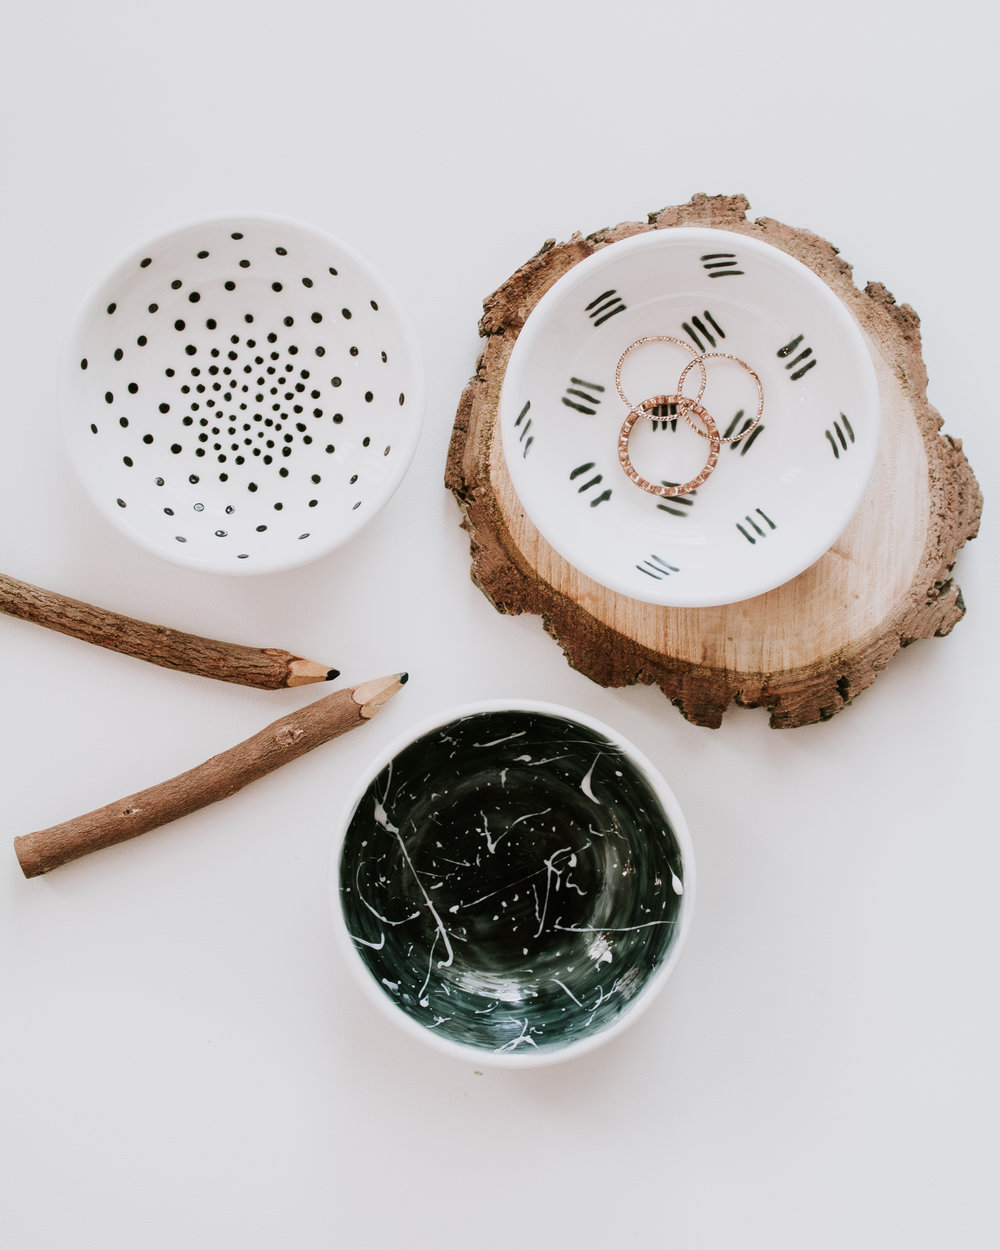 DIY painted jewelry dish - paint your own jewelry bowls with unique designs and patterns.